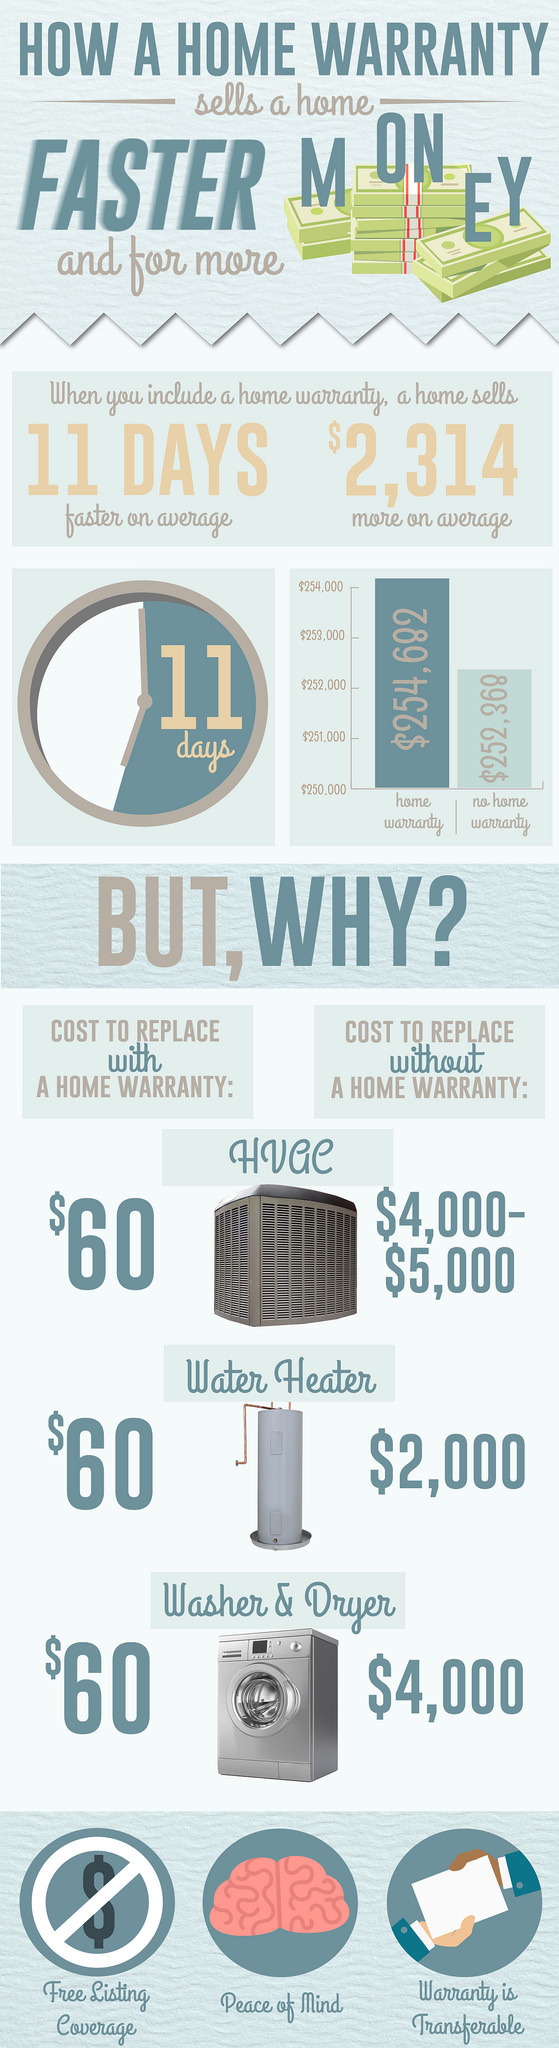 #Infographic on home warranties and how a home warranty sells a house faster and for more money.